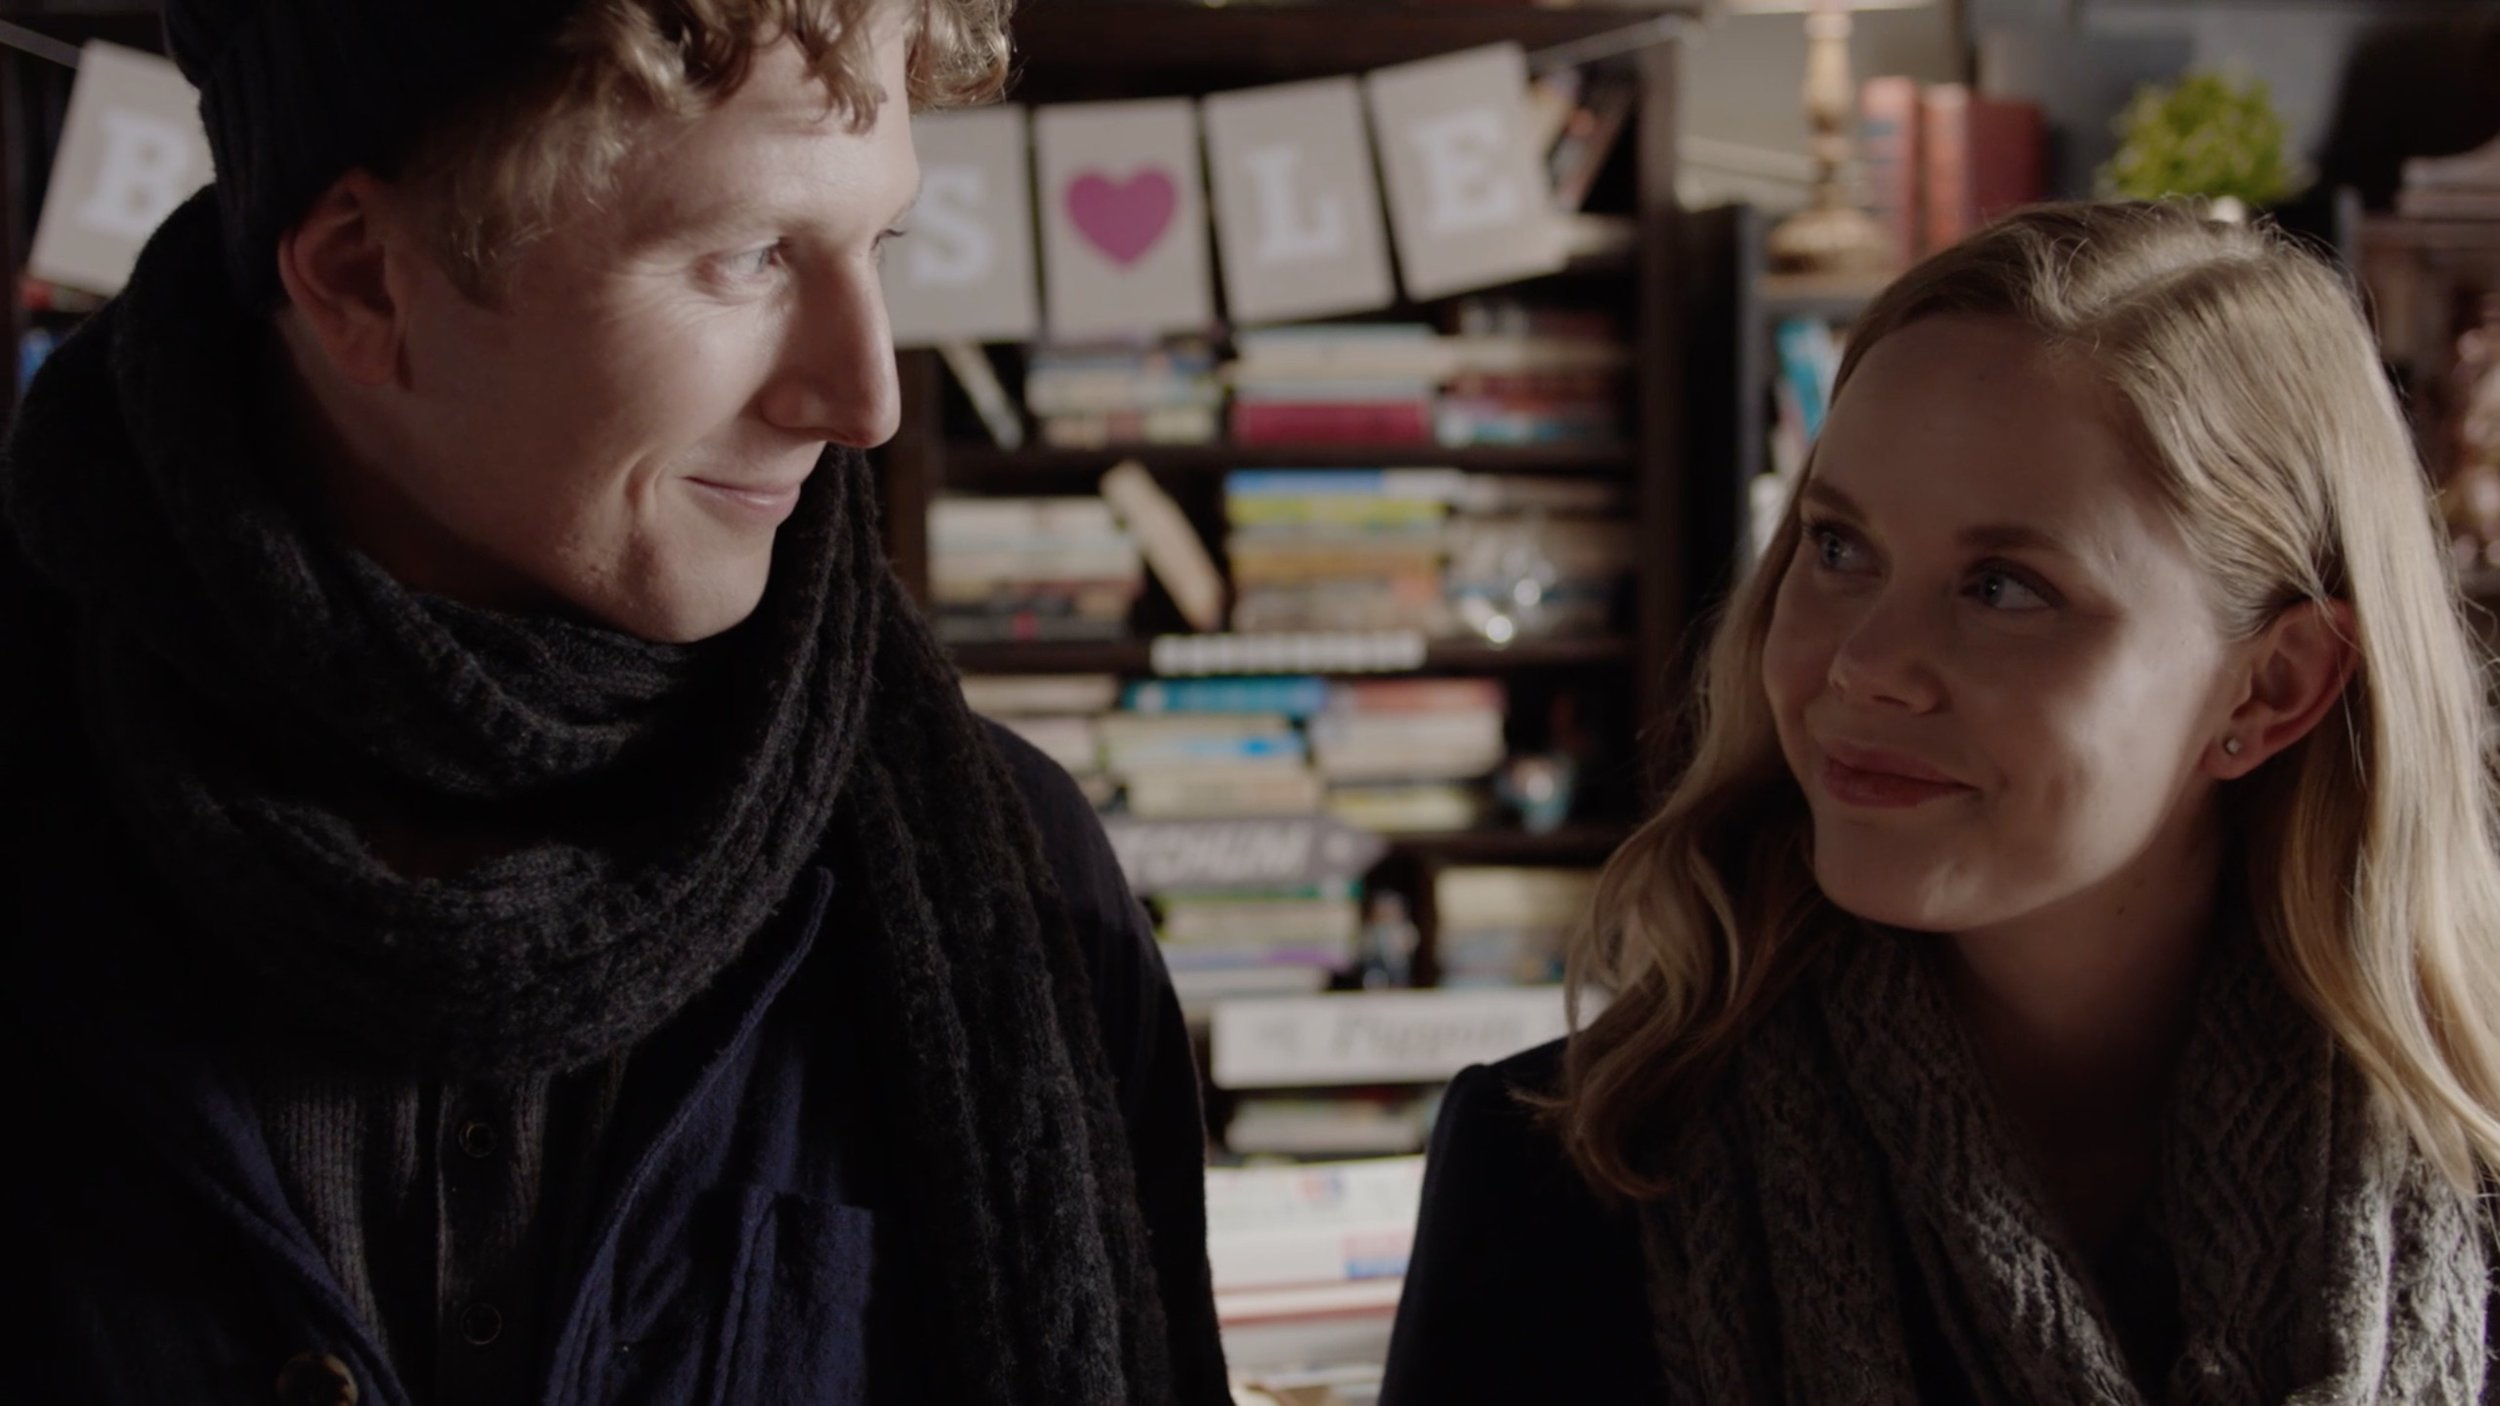 Donald (Alastair Osment) and Abbey (Emily Gruhl) starting to get to know each other in The Bookshop.